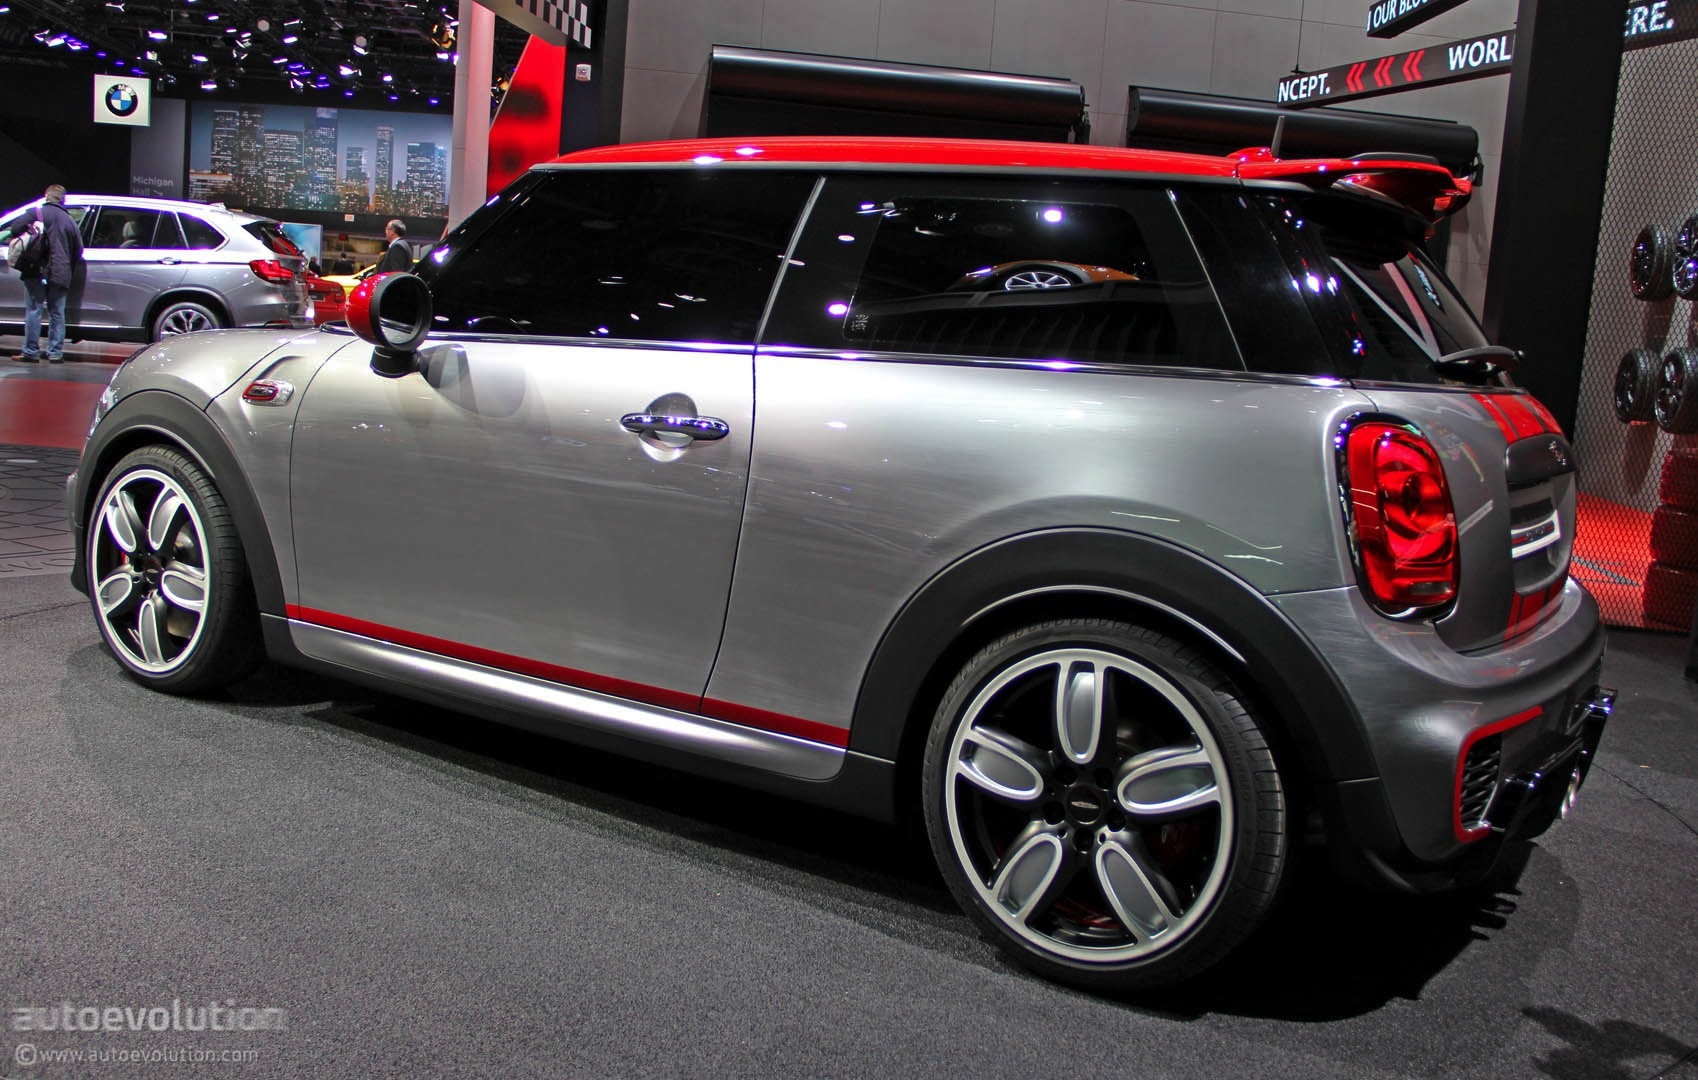 Used Car Engines >> MINI John Cooper Works Concept Shows Up at Detroit [Live Photos] - autoevolution